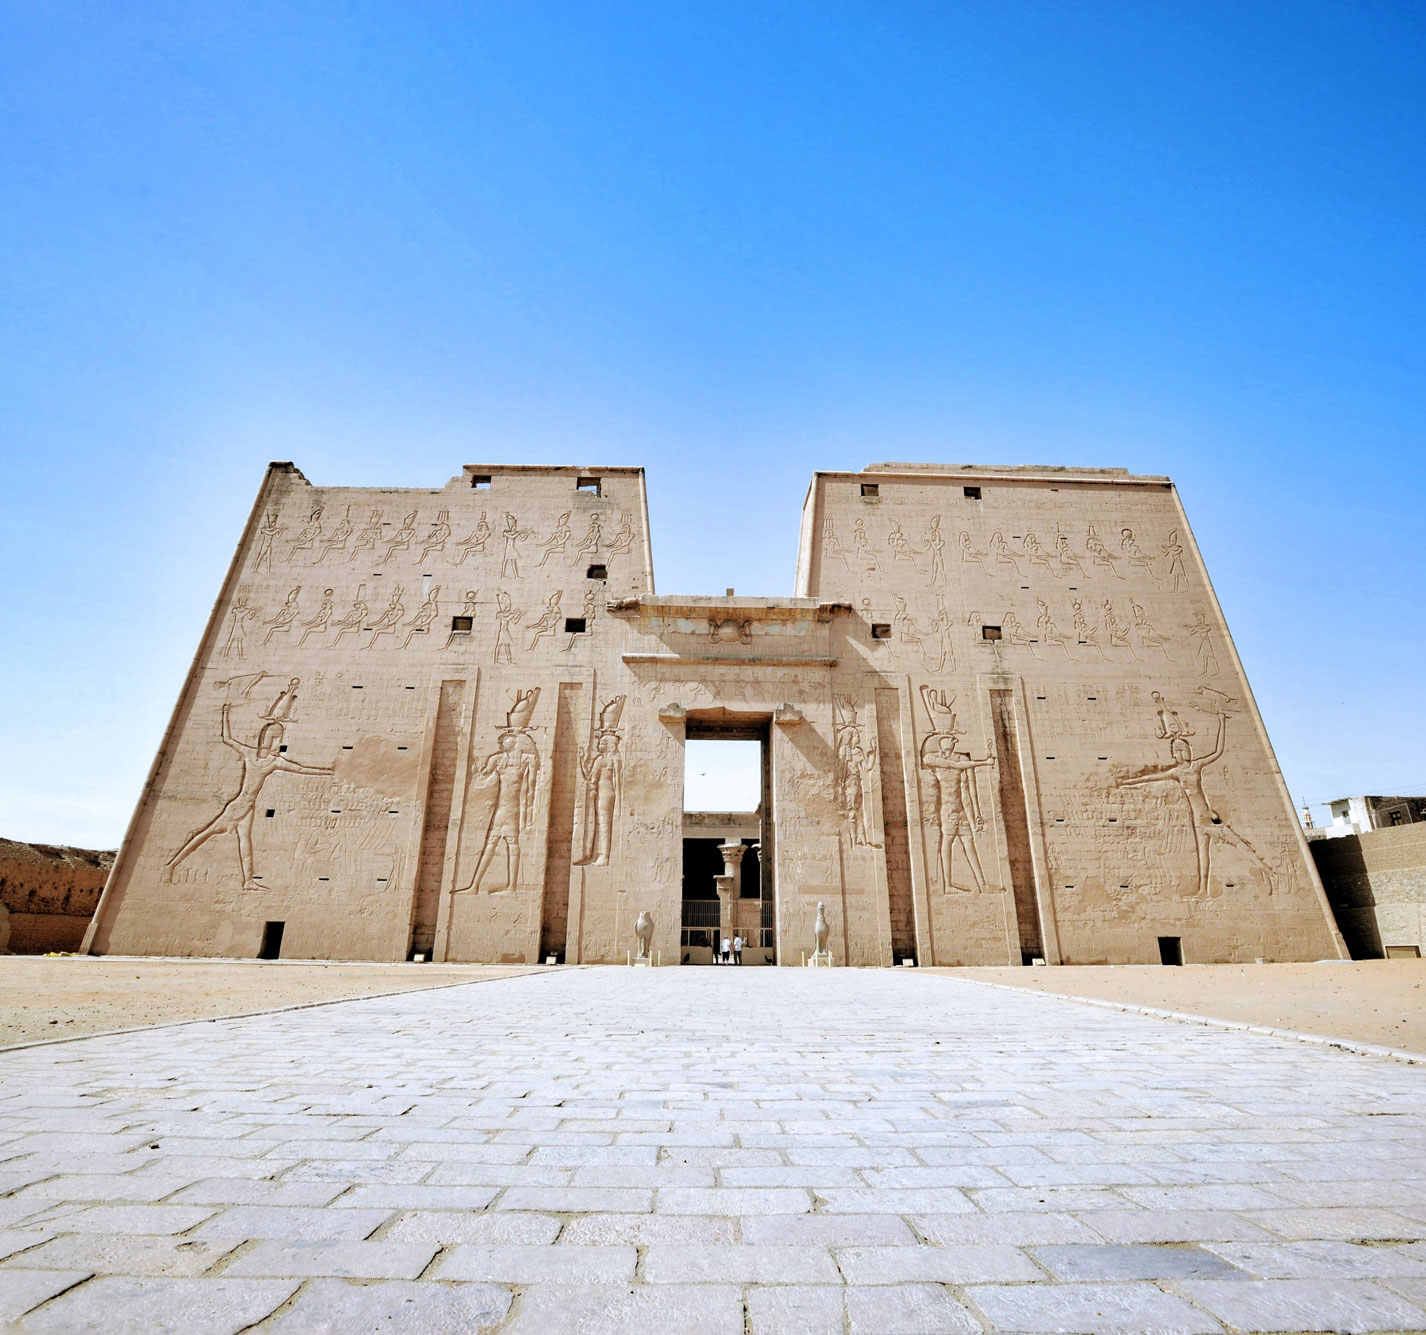 Entrance to the Temple of Horus at Edfu, Egypt